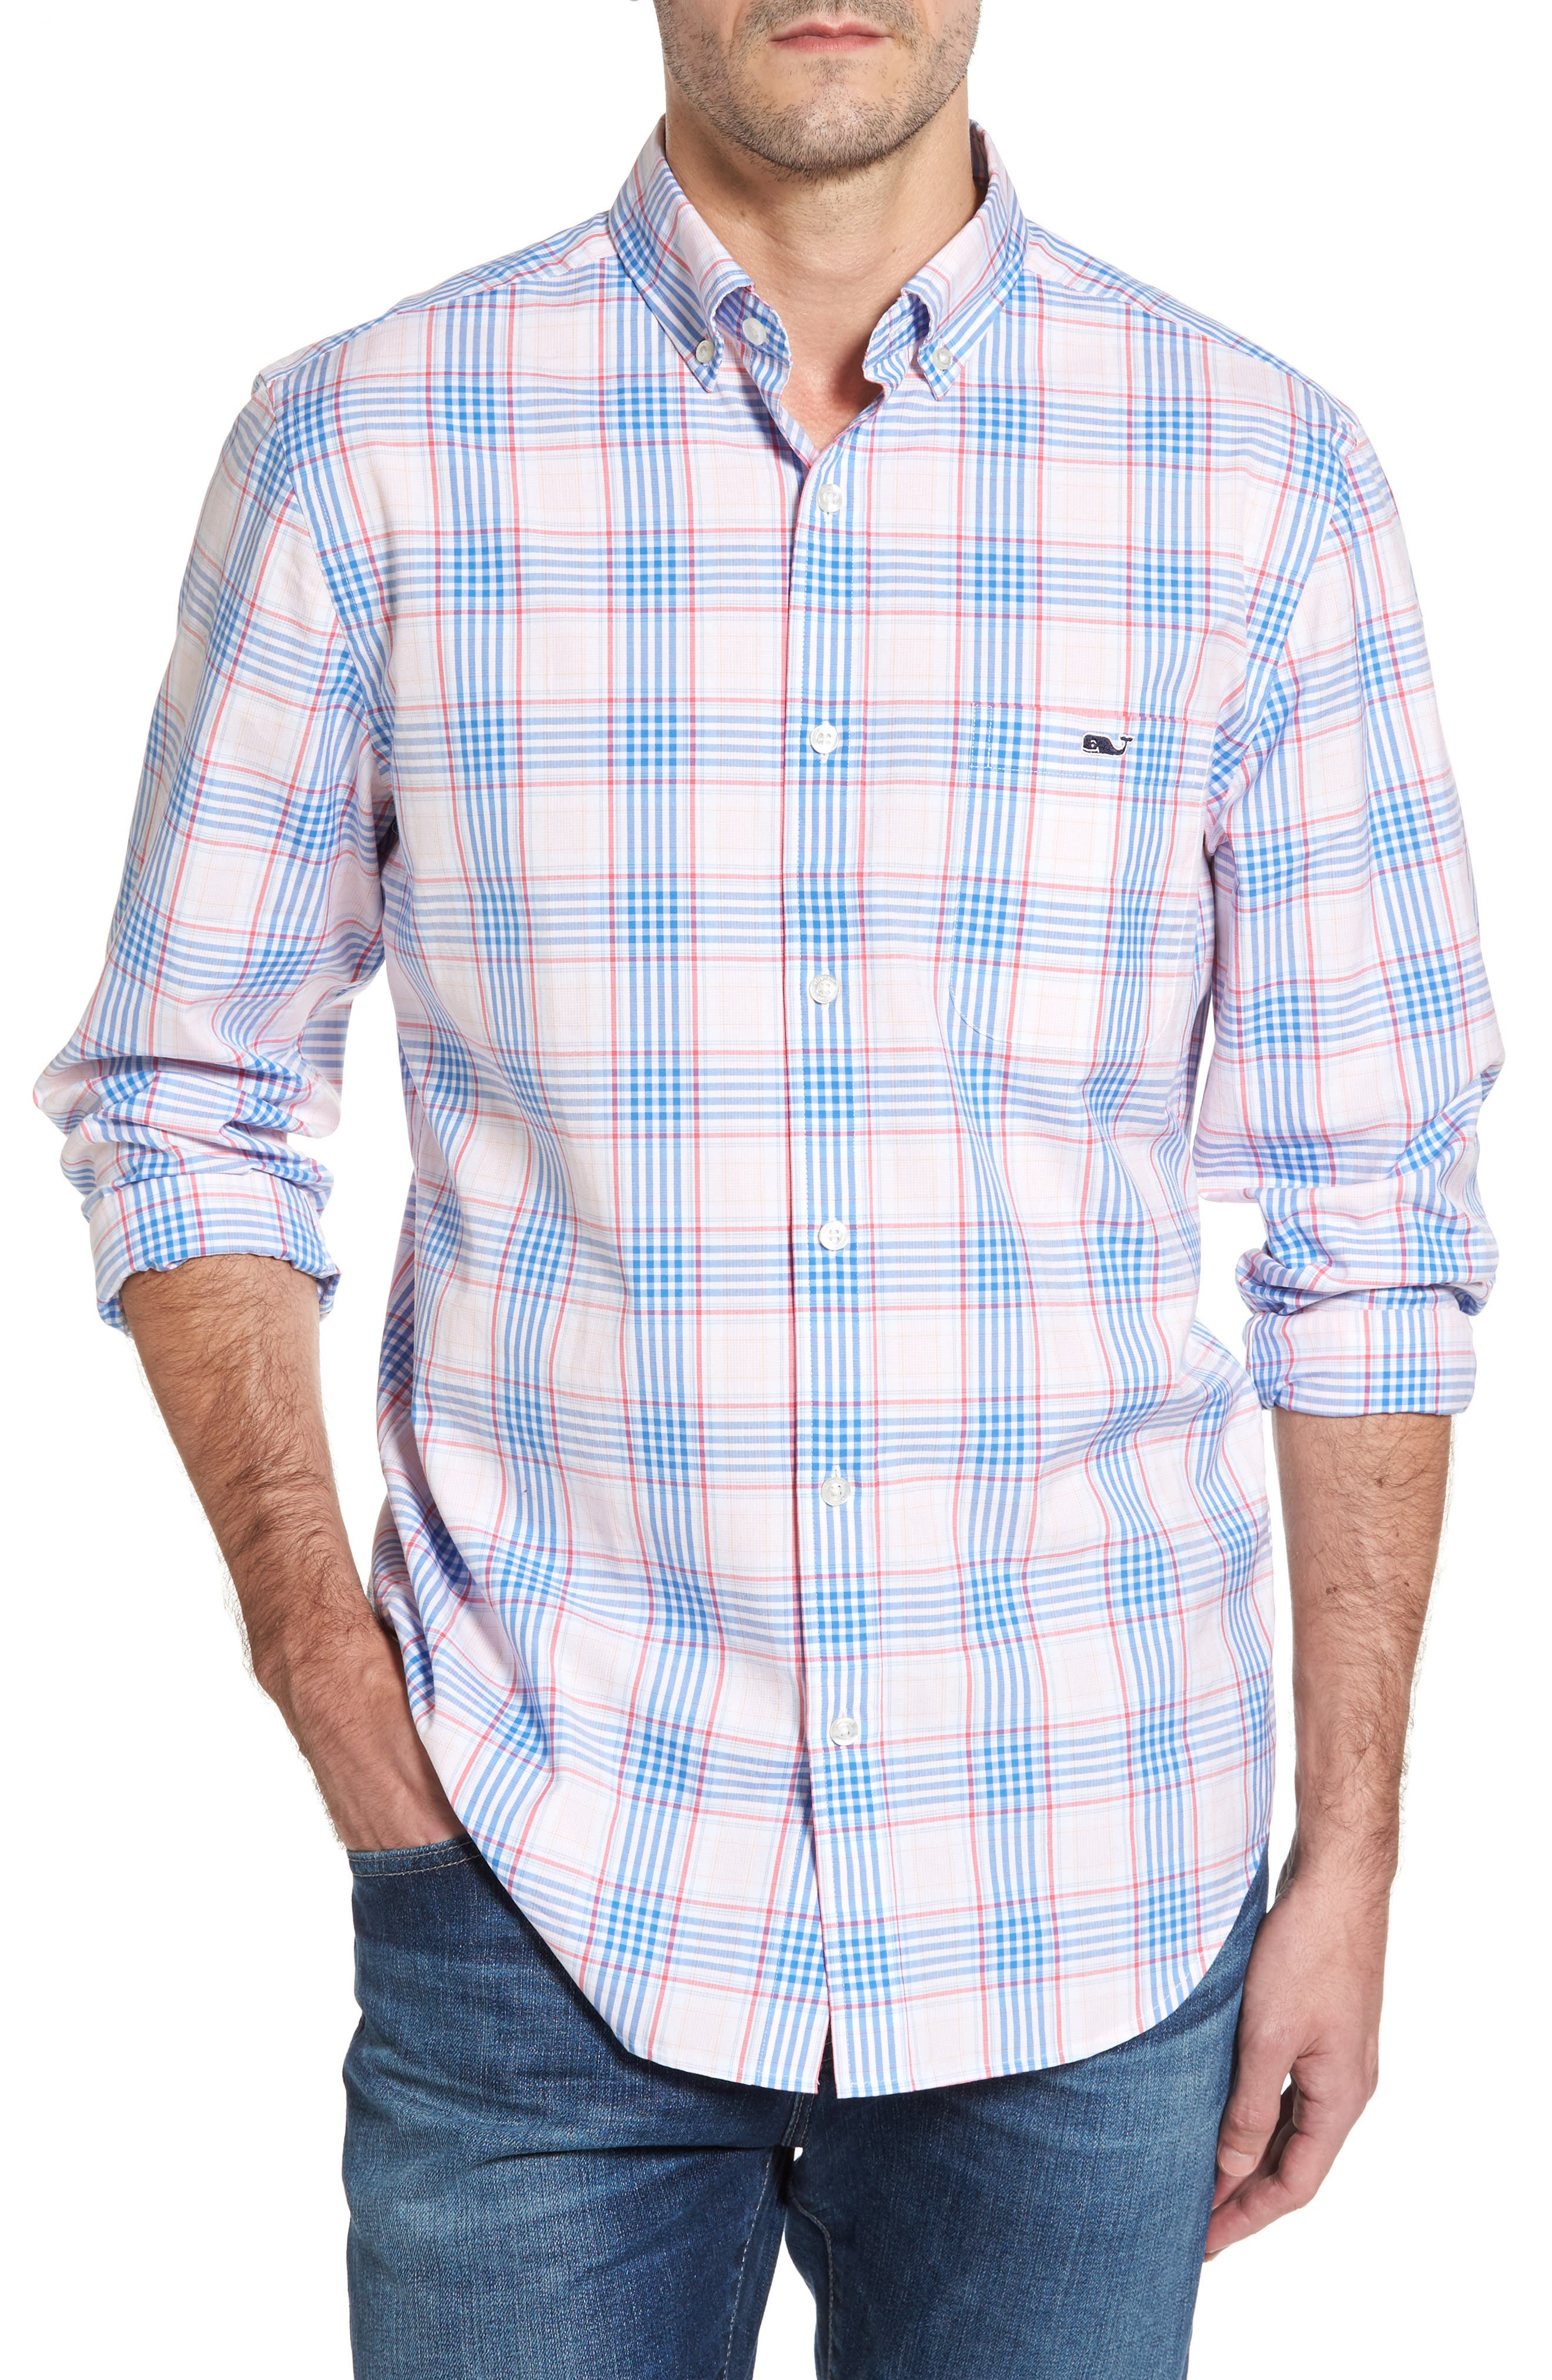 Pelican Plaid Tucker Classic Fit Sport Shirt,                         Main,                         color, Rose Pink